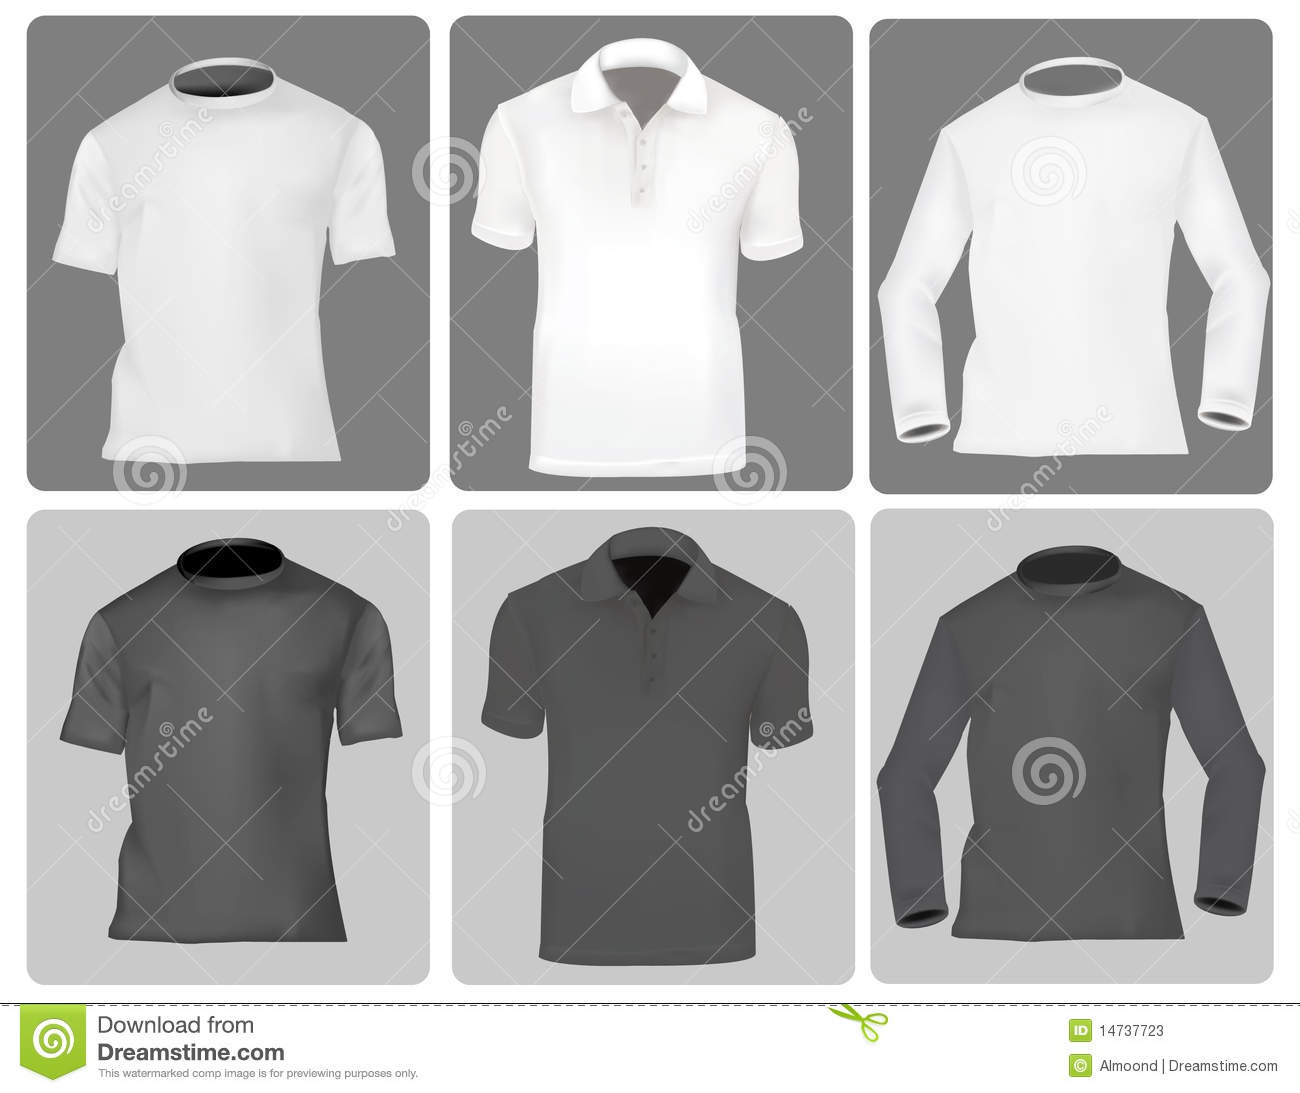 Types of shirts for men pictures to pin on pinterest for Types of shirts for men